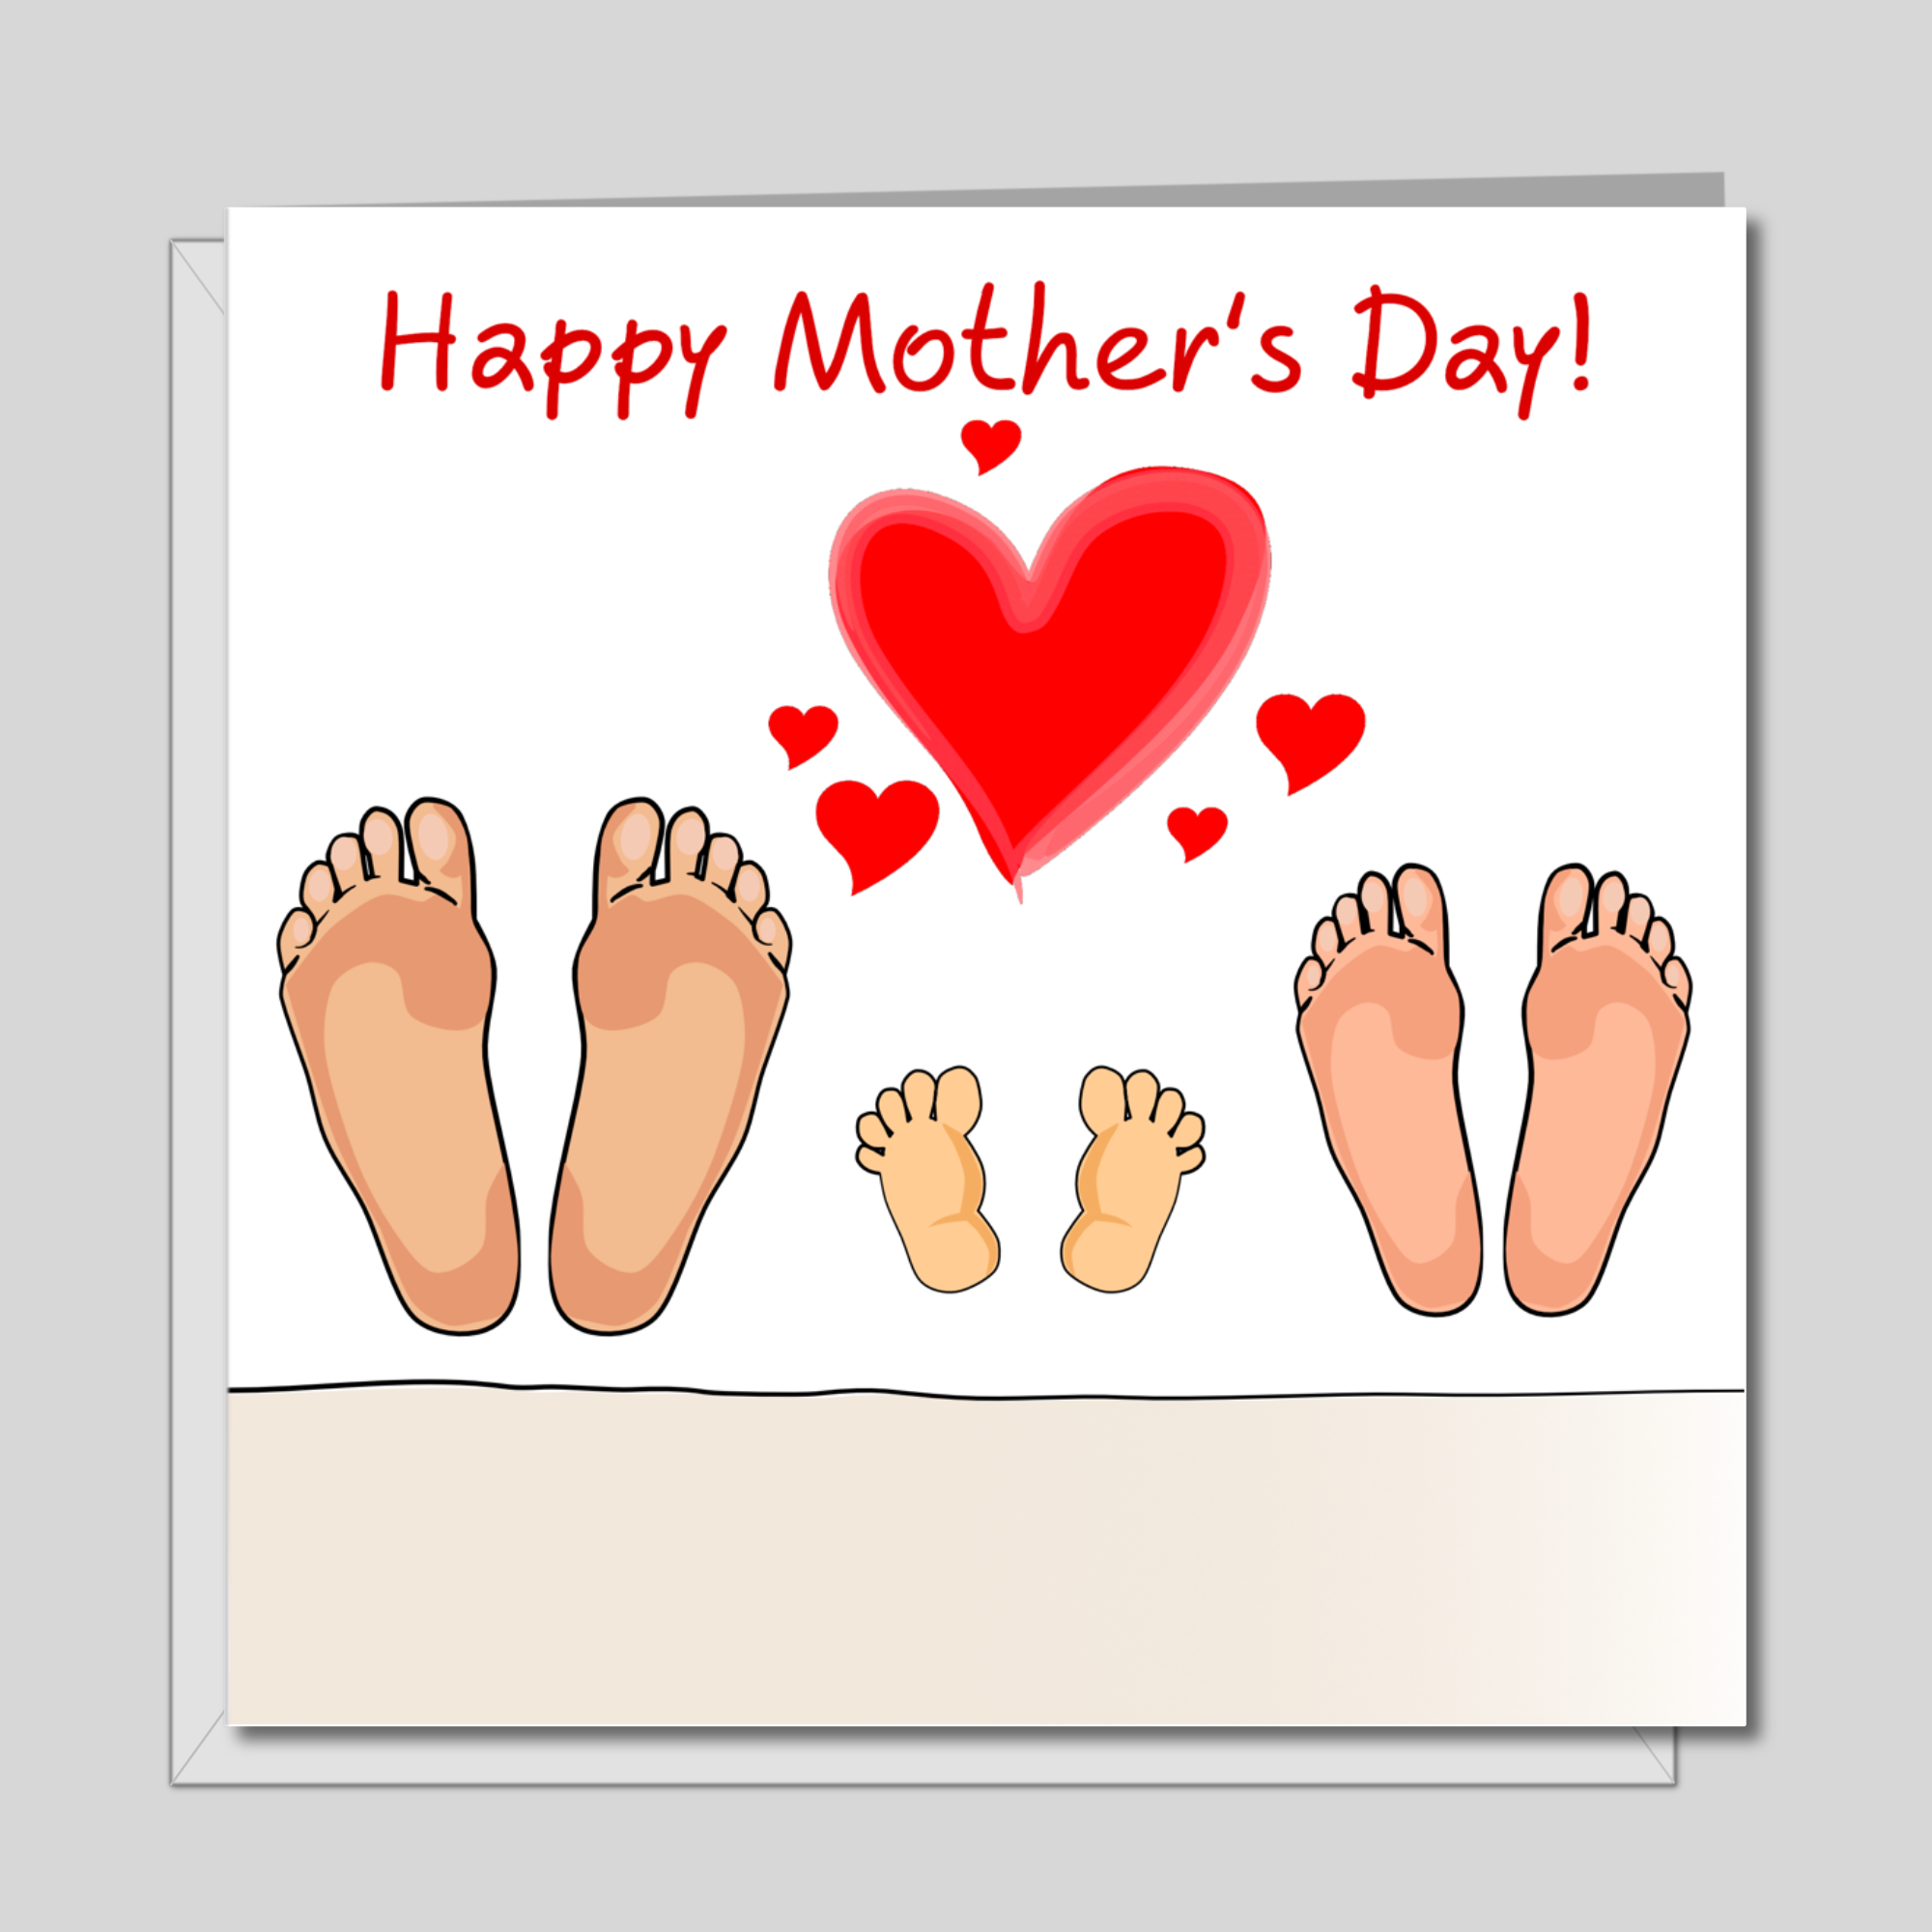 New Baby Mother's Day Card for new Mum from baby or husband - happiness love